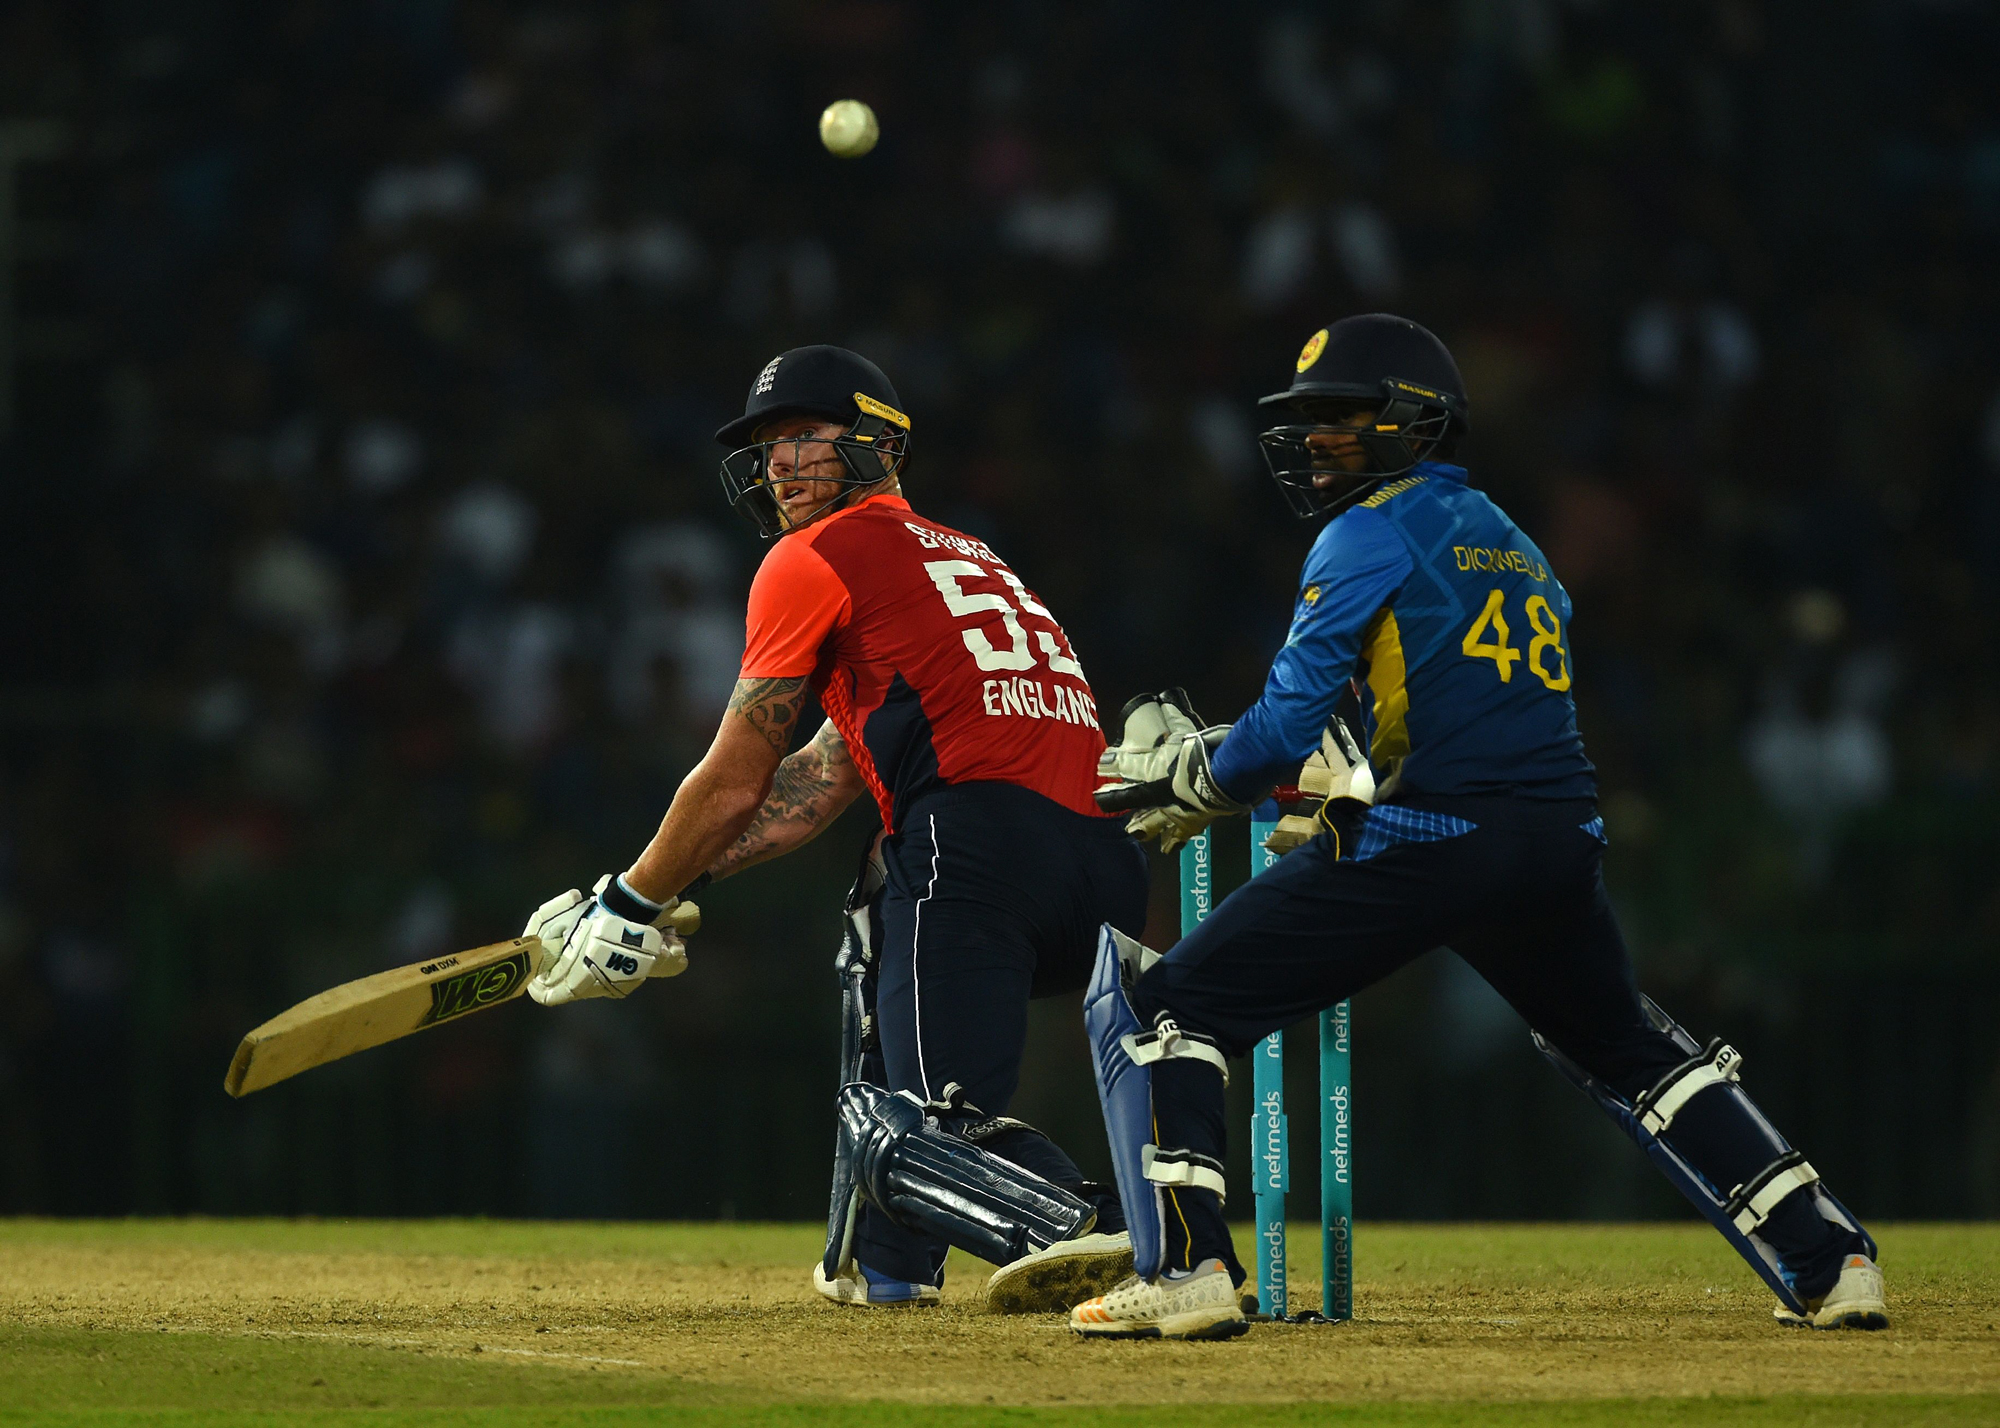 England cricketer Ben Stokes (L) plays a shot as Sri Lankan wicketkeeper Niroshan Dickwella (R) looks on during the international Twenty20 cricket match between Sri Lanka and England at the R. Peremadasa Stadium in Colombo on October 27, 2018. (Photo by I